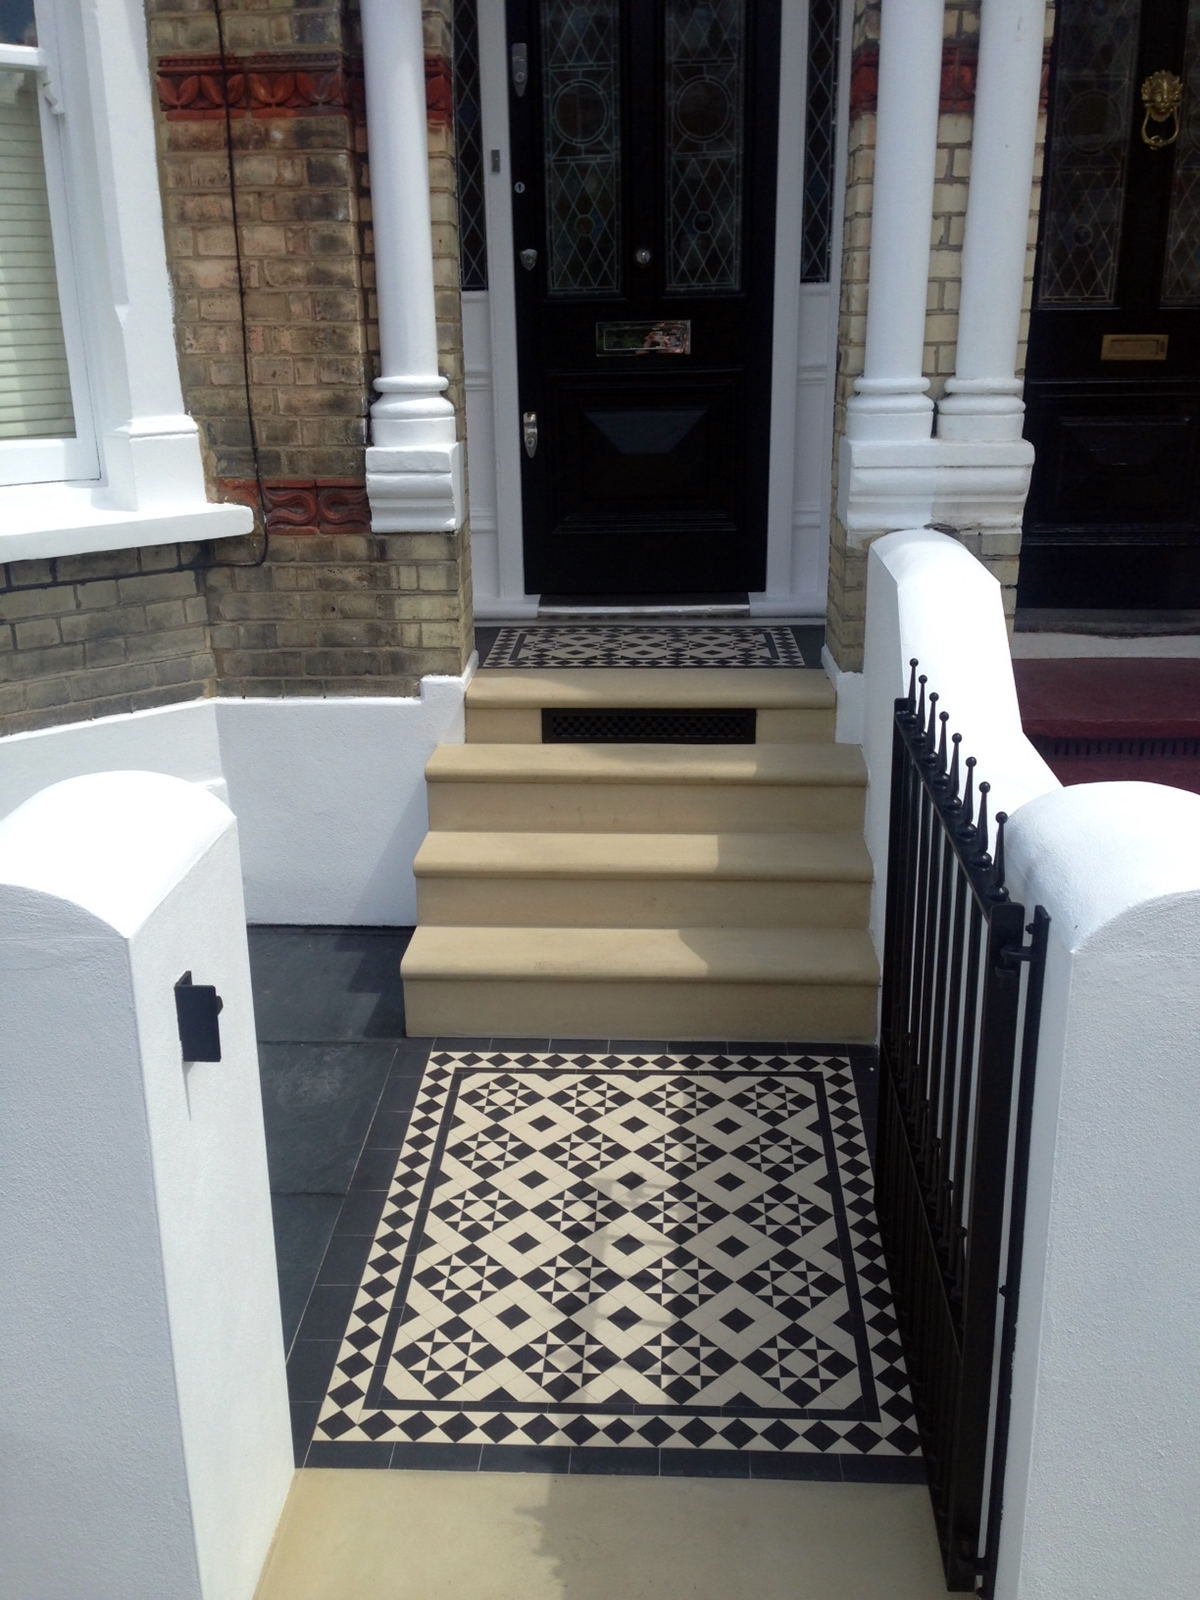 Steps To Apply Makeup For Beginners: Bull Nose York Stone Steps Daisy Grate Victorian Mosaic